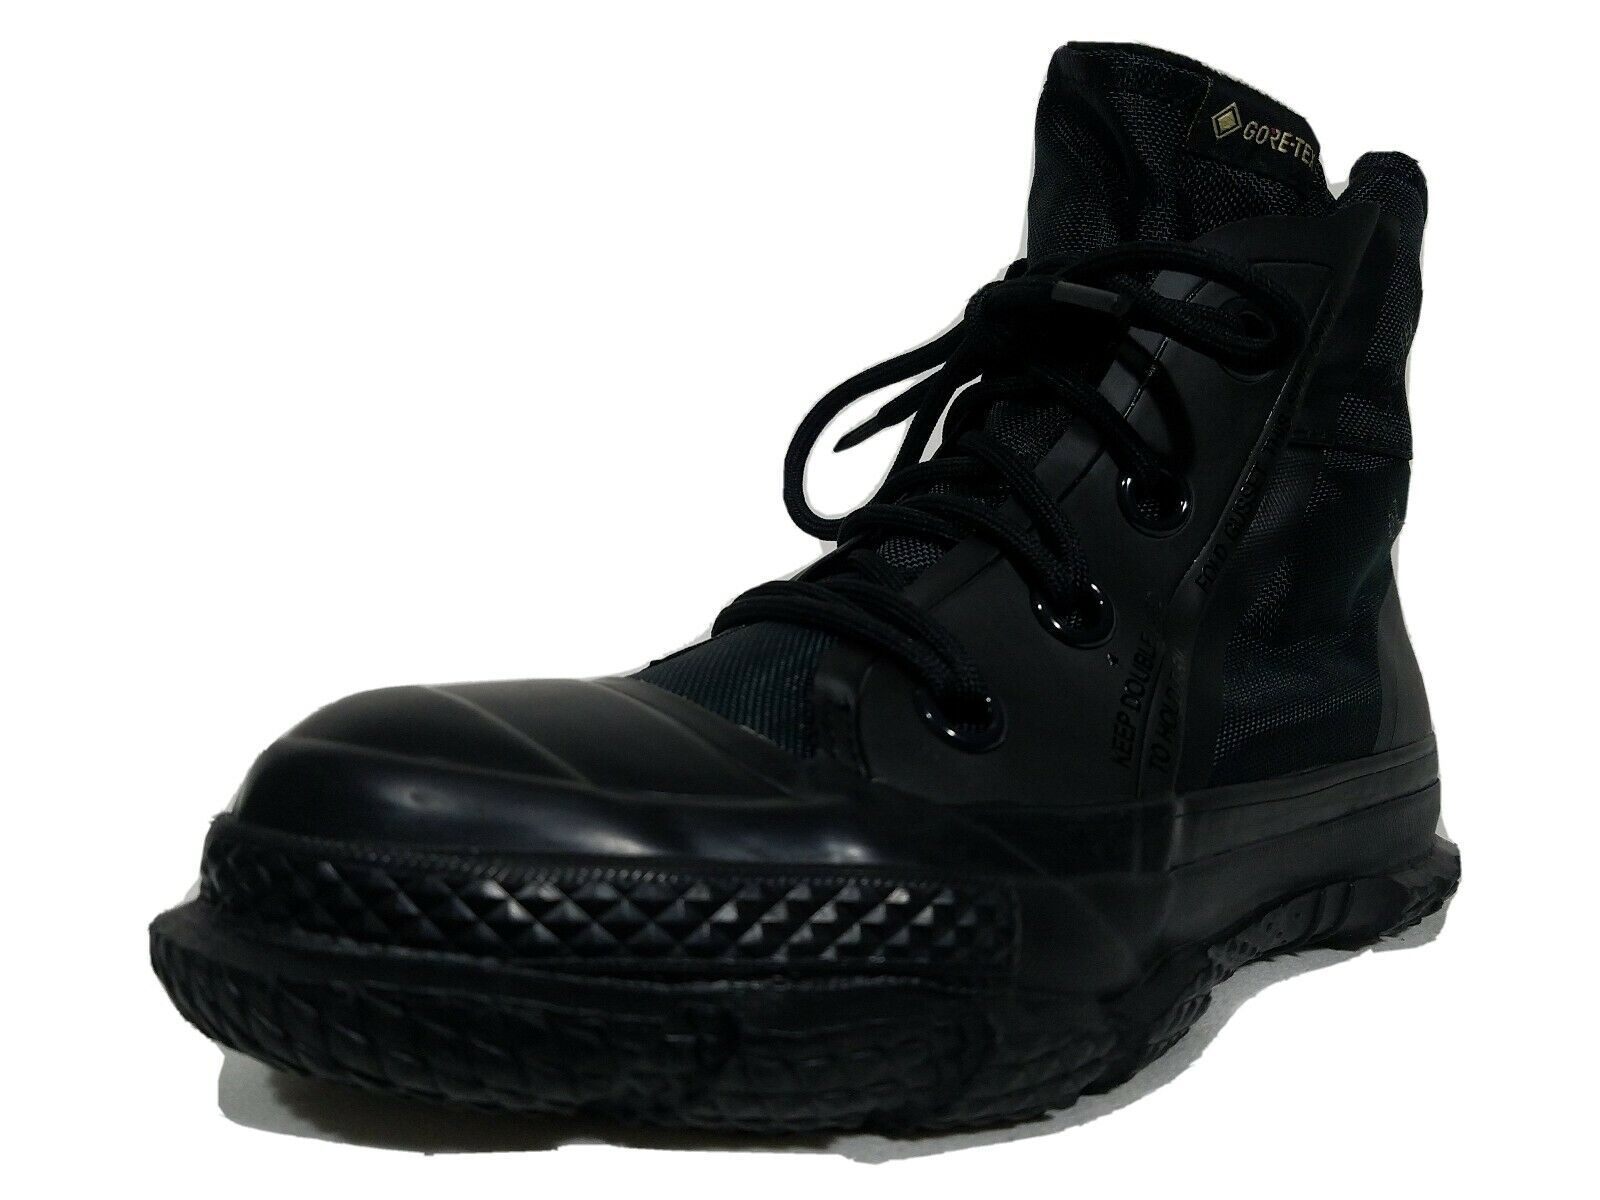 Primary image for Converse Chuck Taylor Gore-Tex Boots Size 5.5 Women's Black Waterproof 165946C